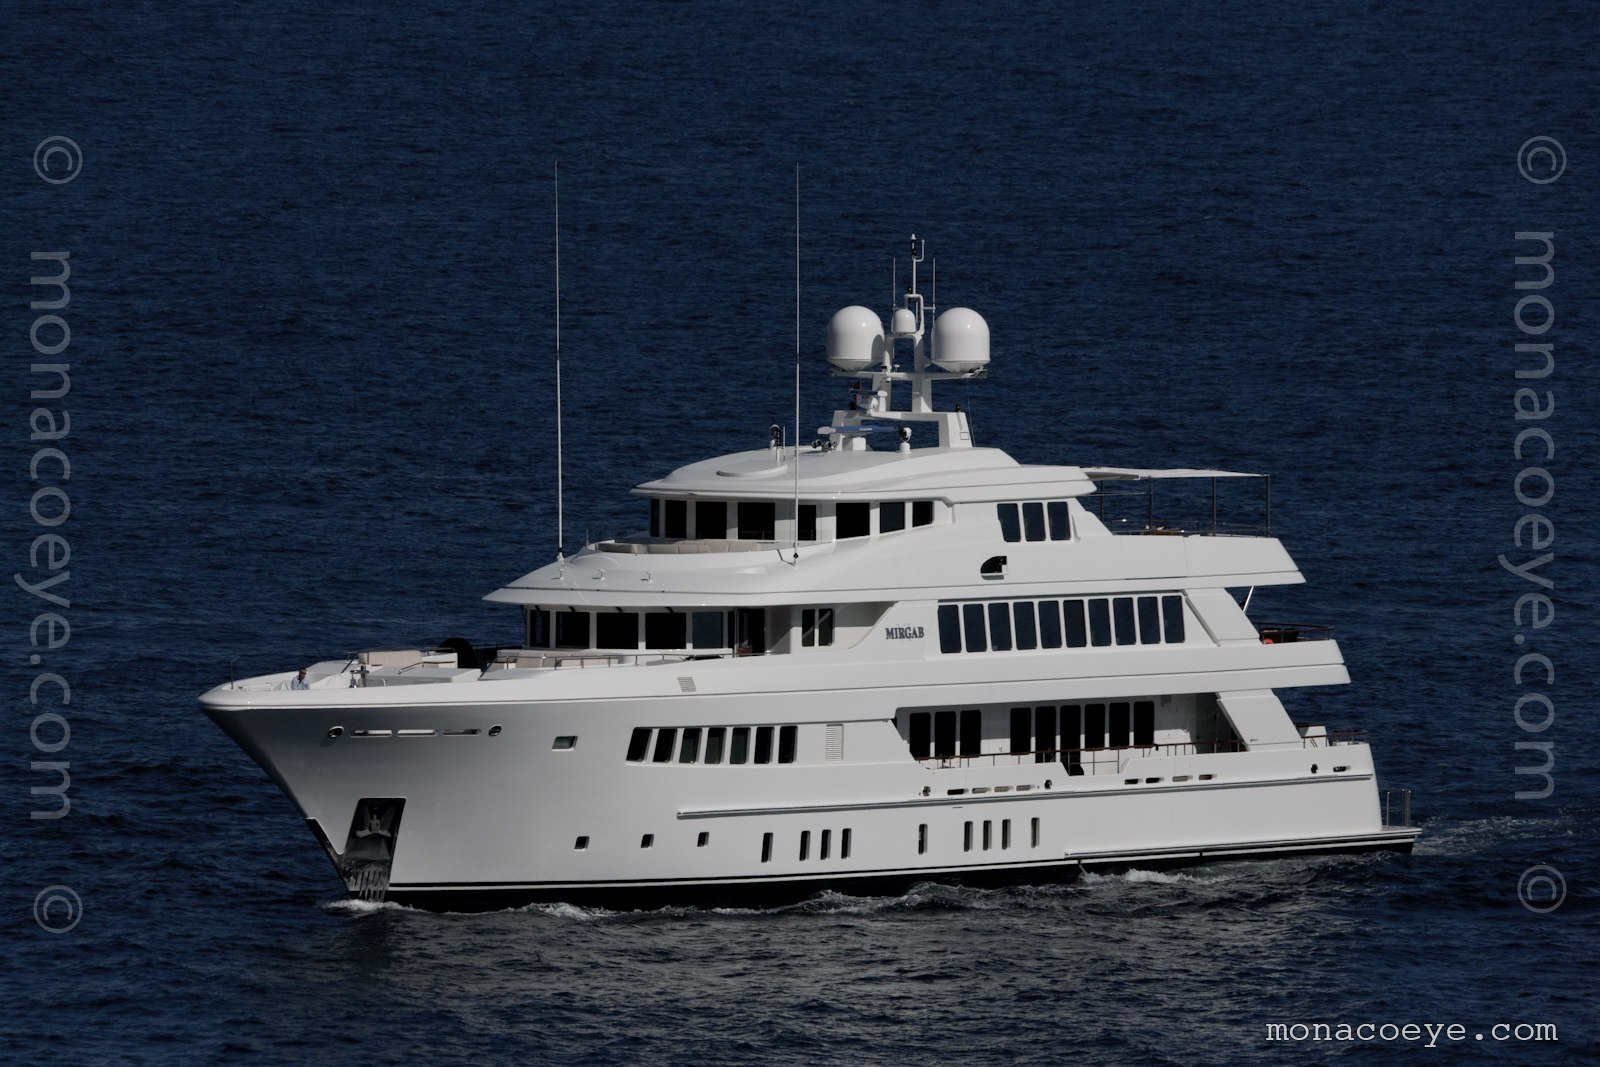 Mirgab VI yacht. Built by Hakvoort, 2009, 49 metres. The naval architect was Diana Yacht Design and she was designed by Glade Johnson